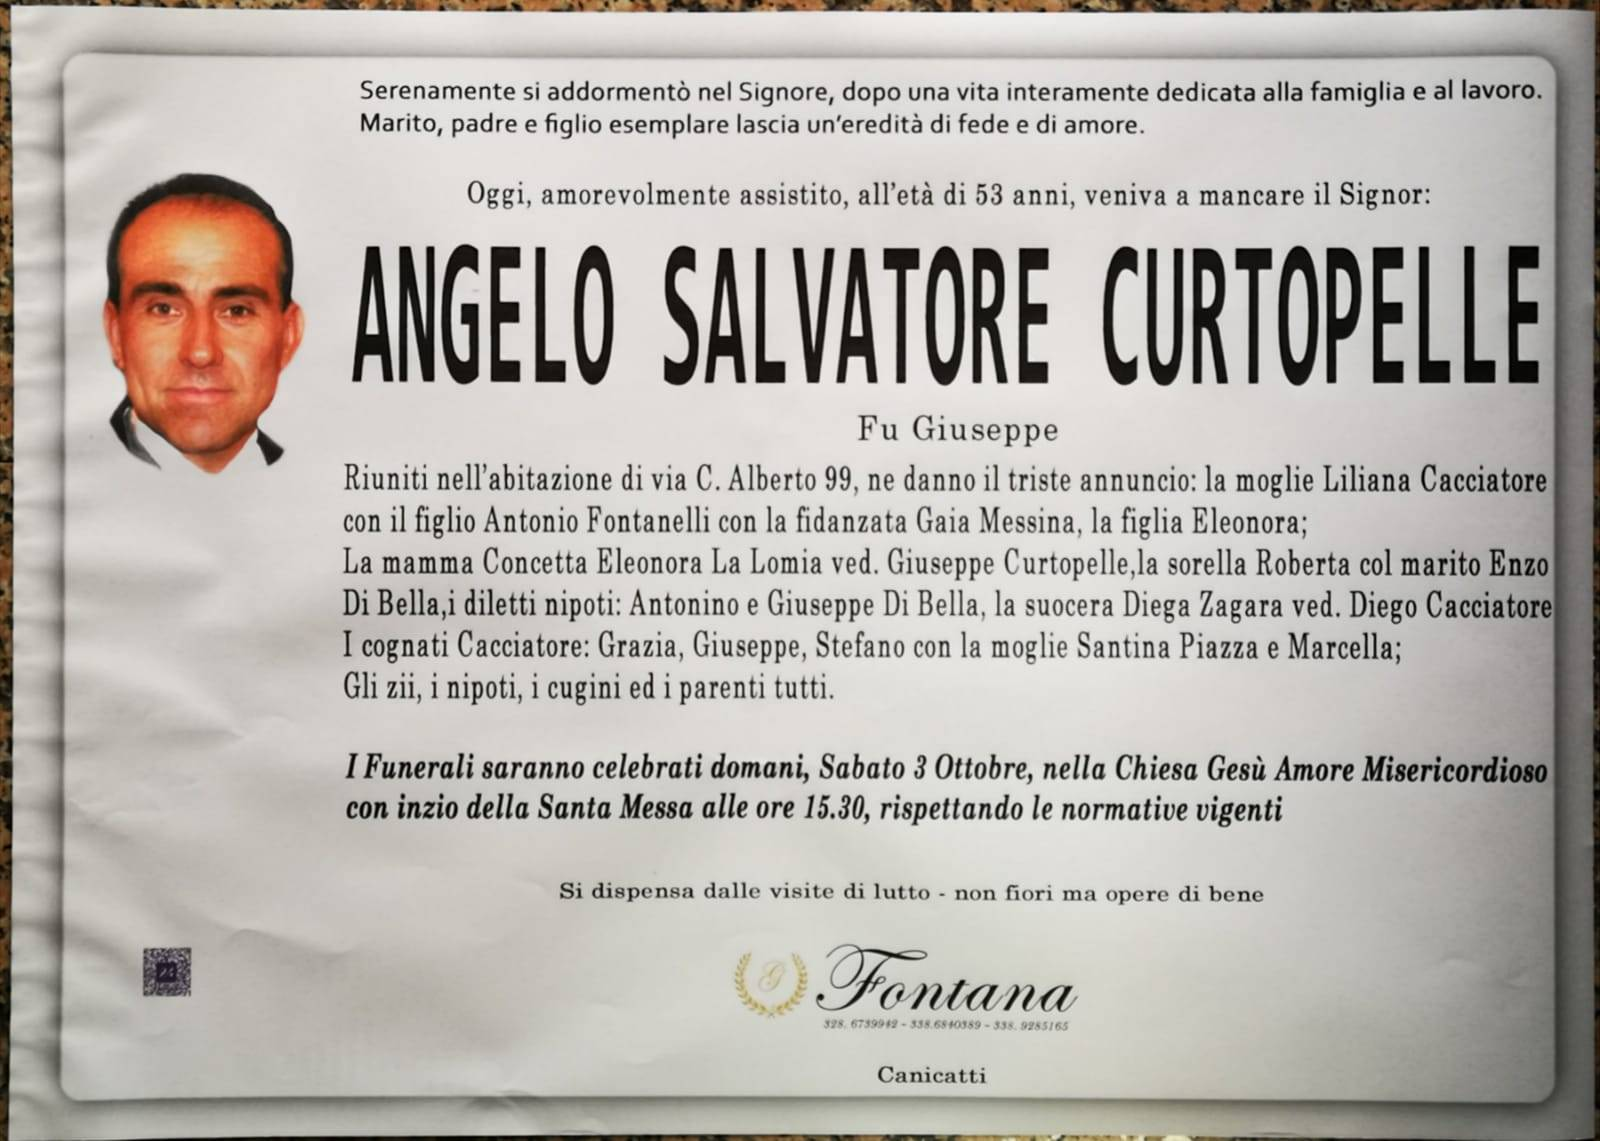 Angelo Salvatore Curtopelle